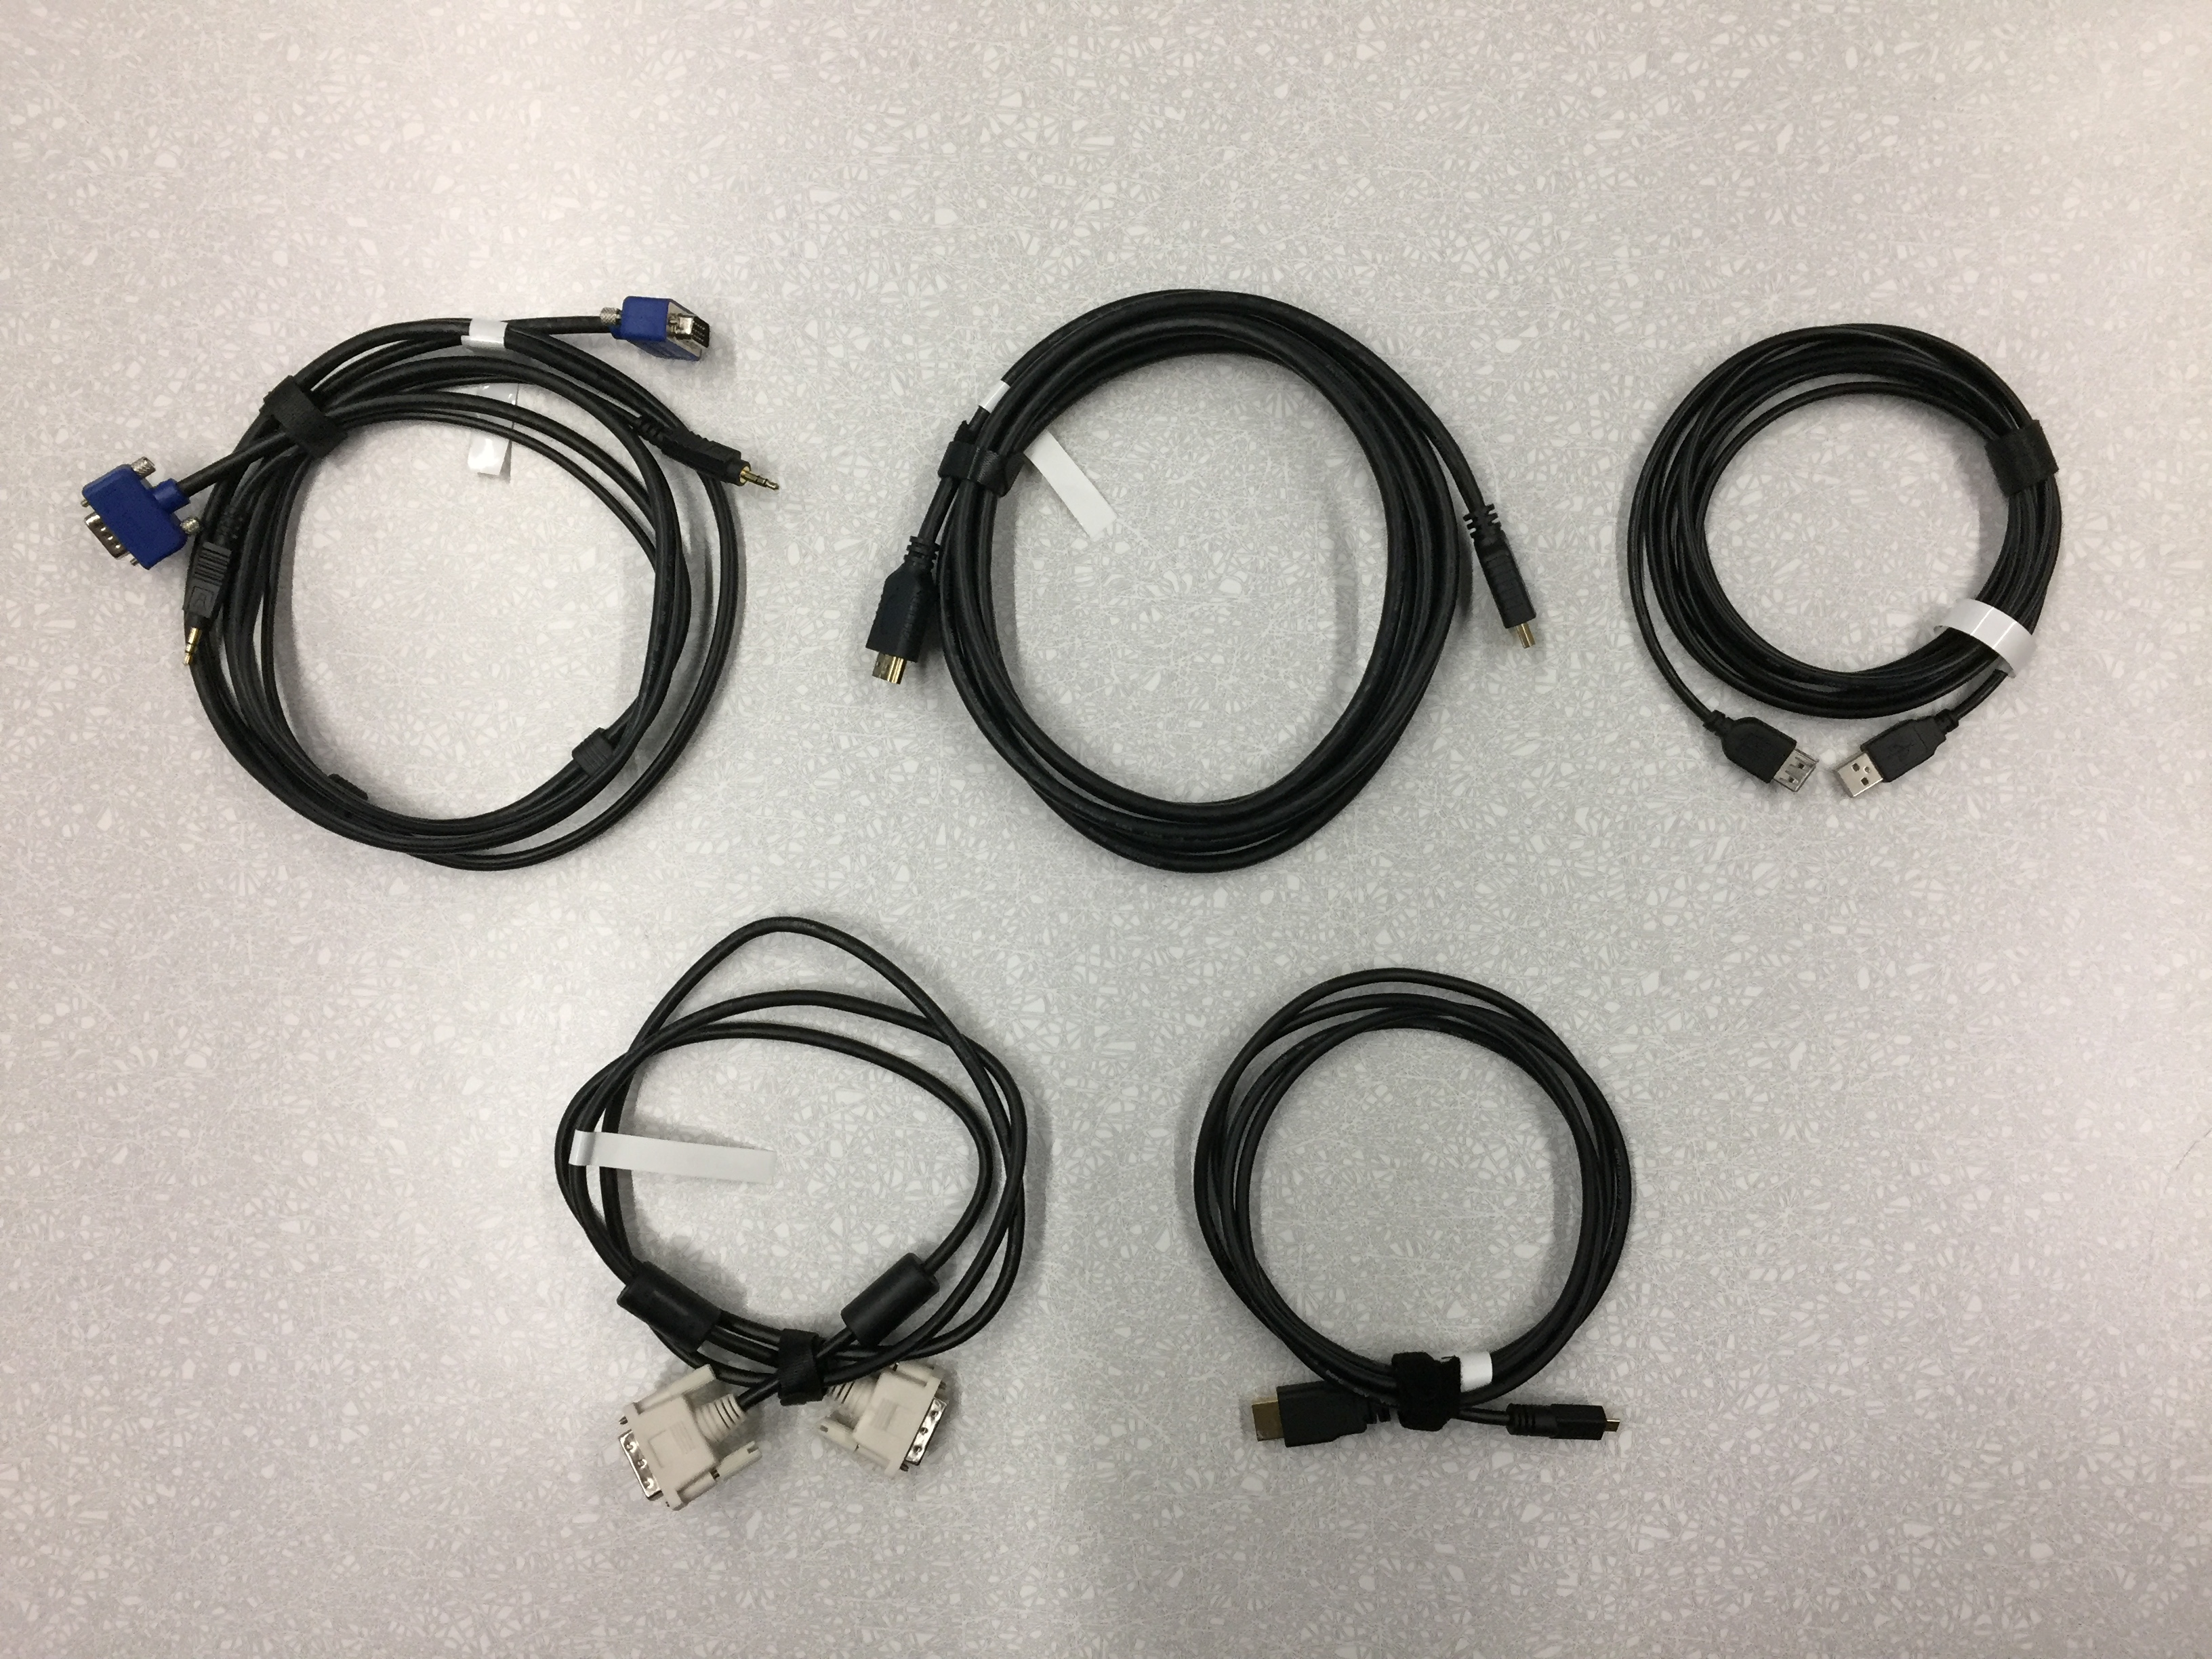 Video Extension Cables